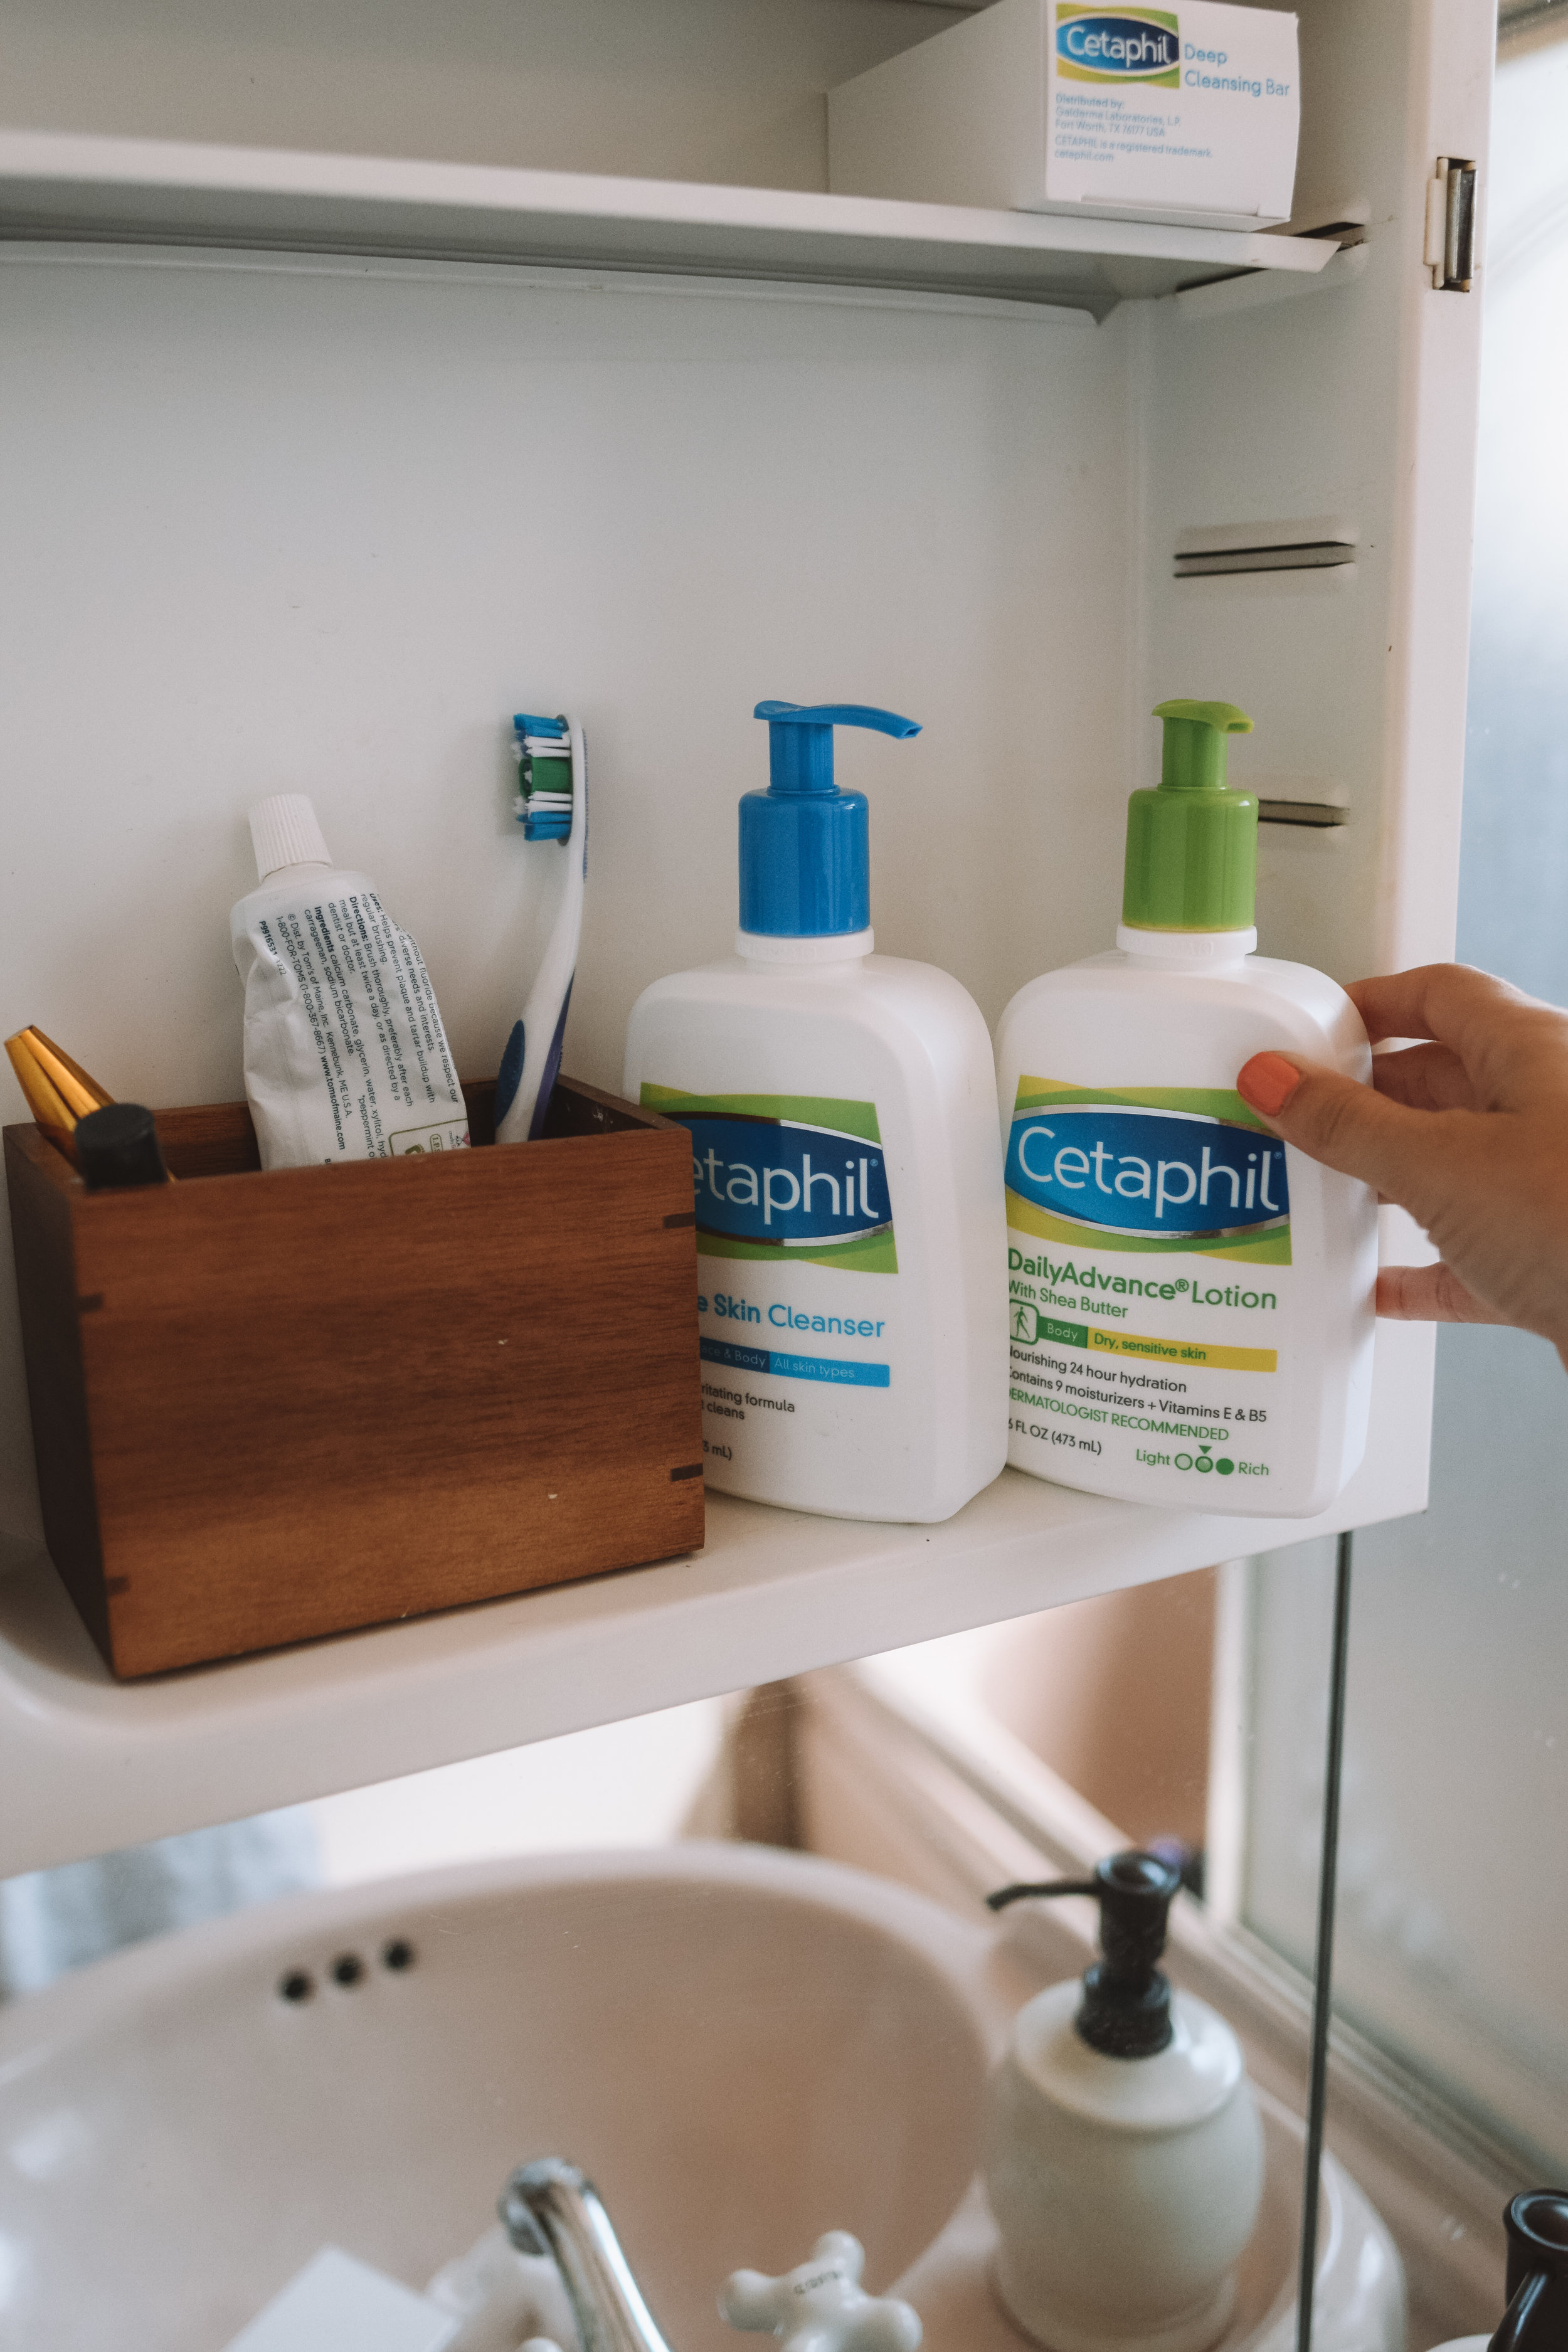 Best Gentle Facial Skin Cleanser - Cetaphil Reviews -- The Overwhelmed Pregnant Mommy Blogger